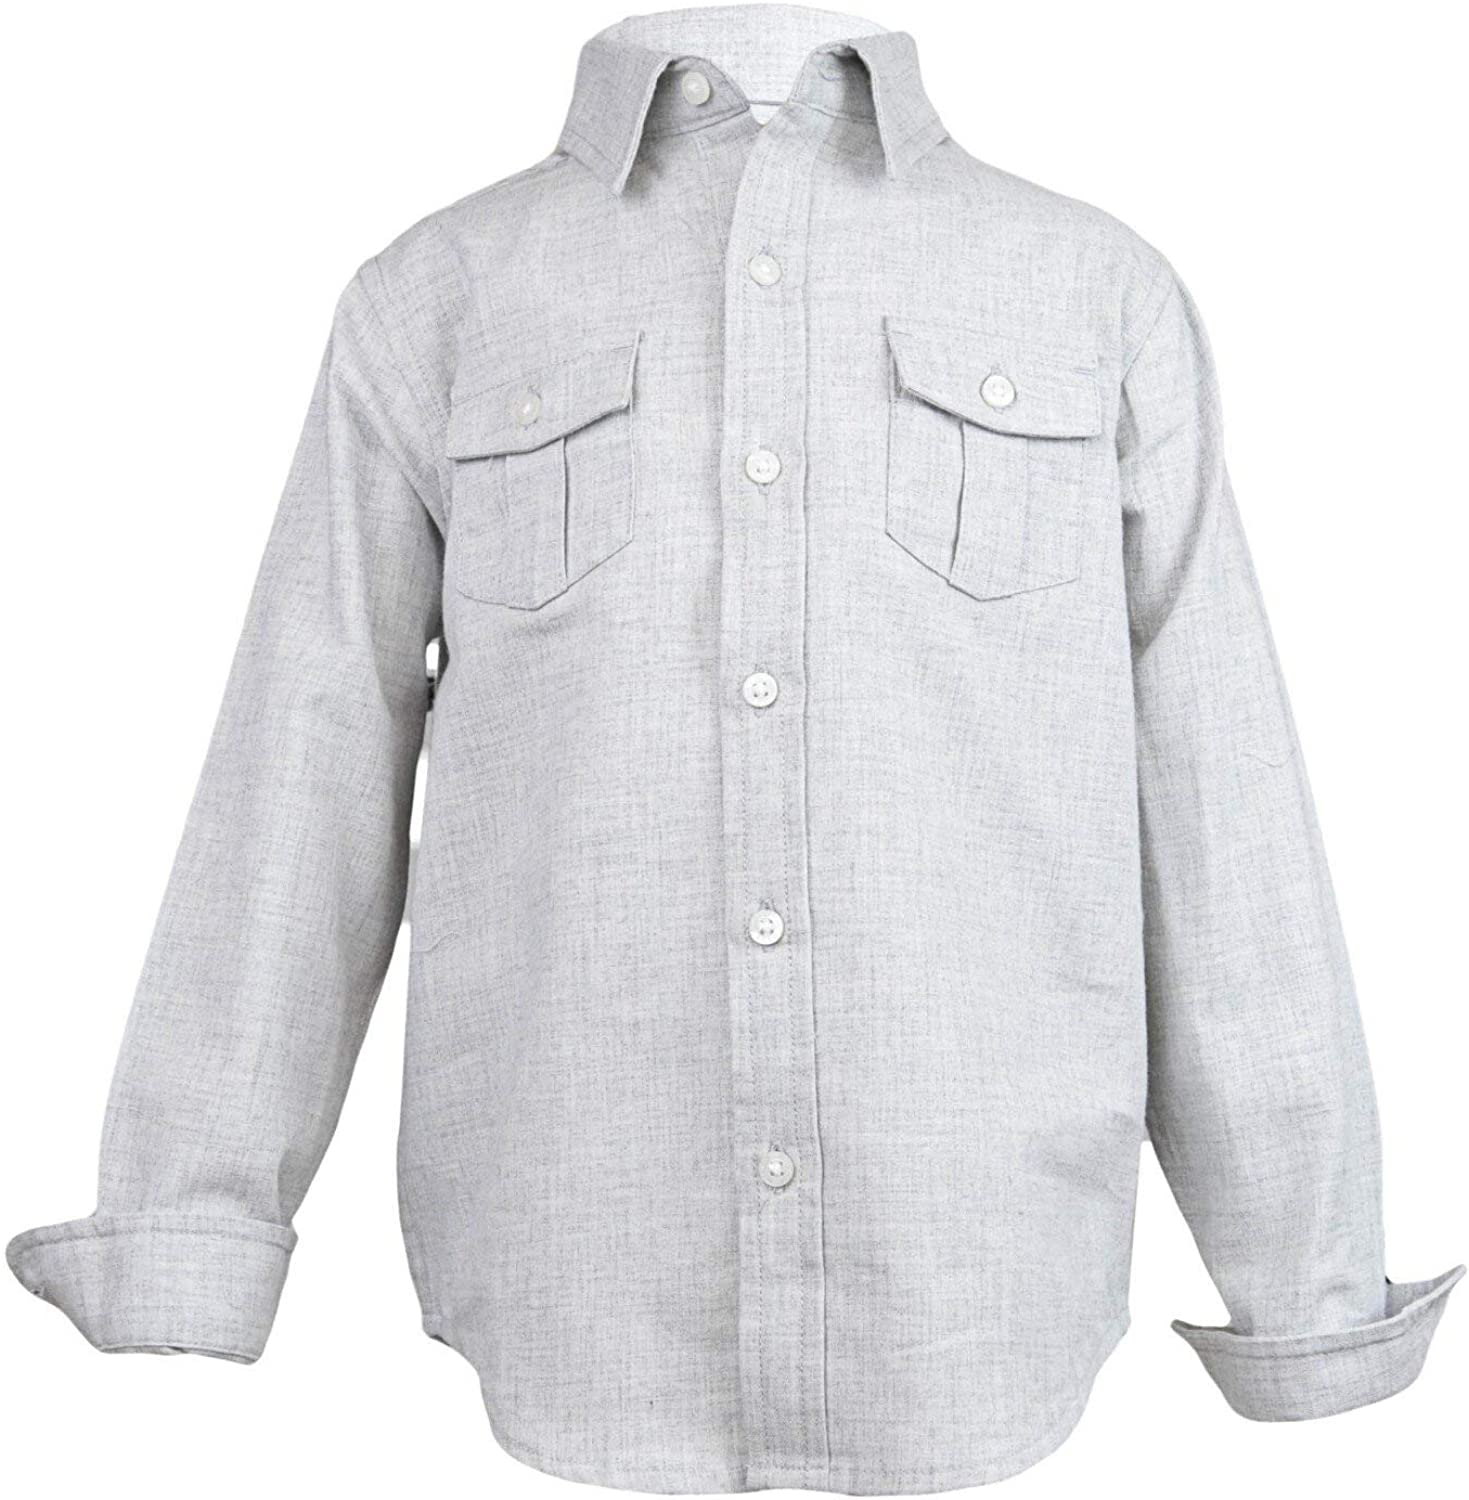 Janie and Jack Brushed Twill Shirt Button-Down & Dress - 5 - Heather Grey